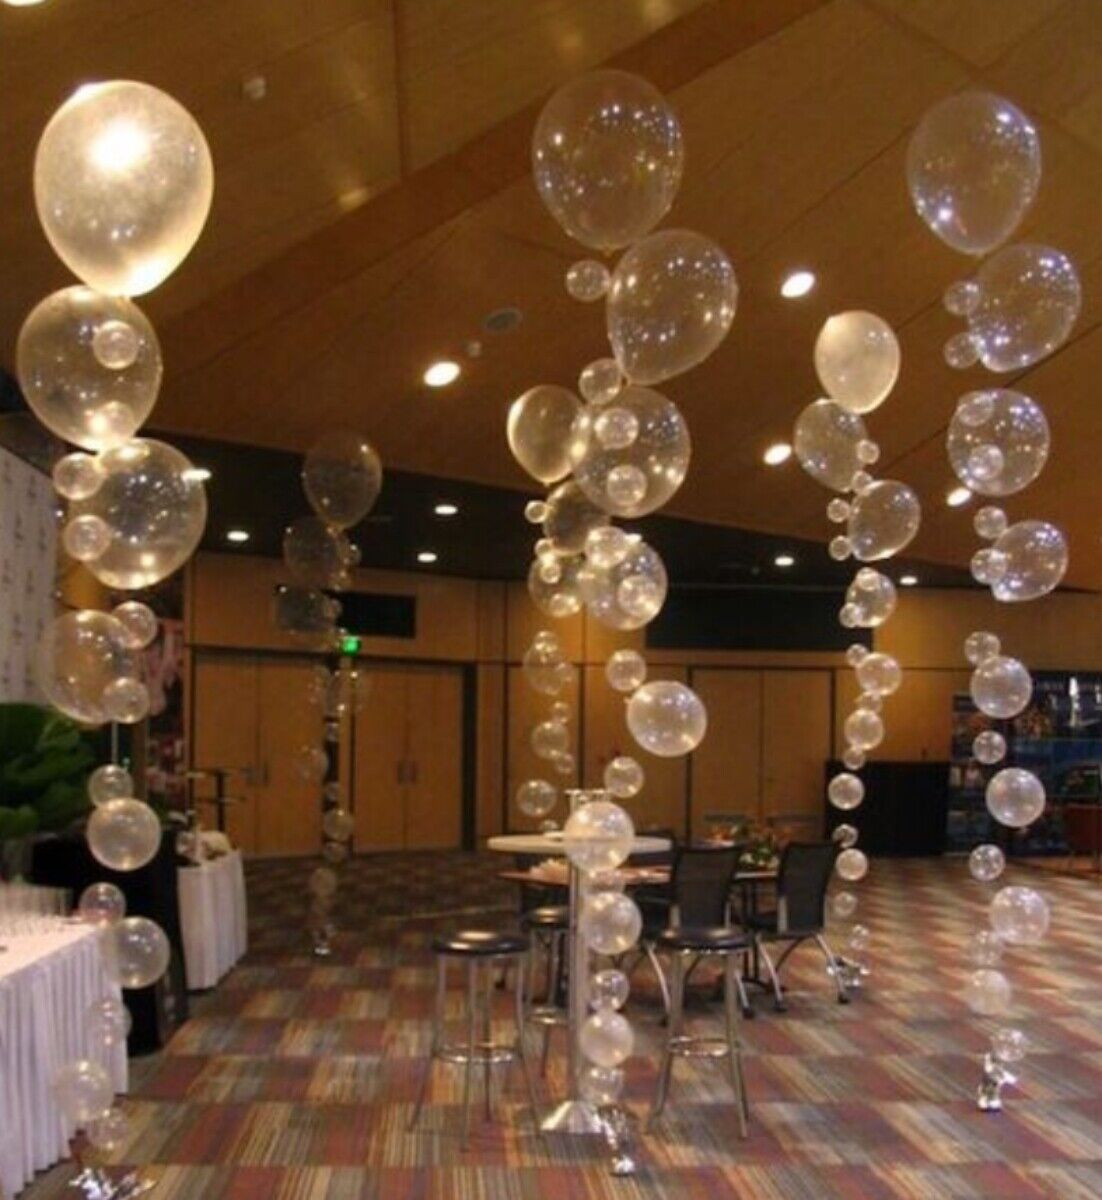 16 PC Clear Balloon Party Kit Bubbles Balloons, Under the Se